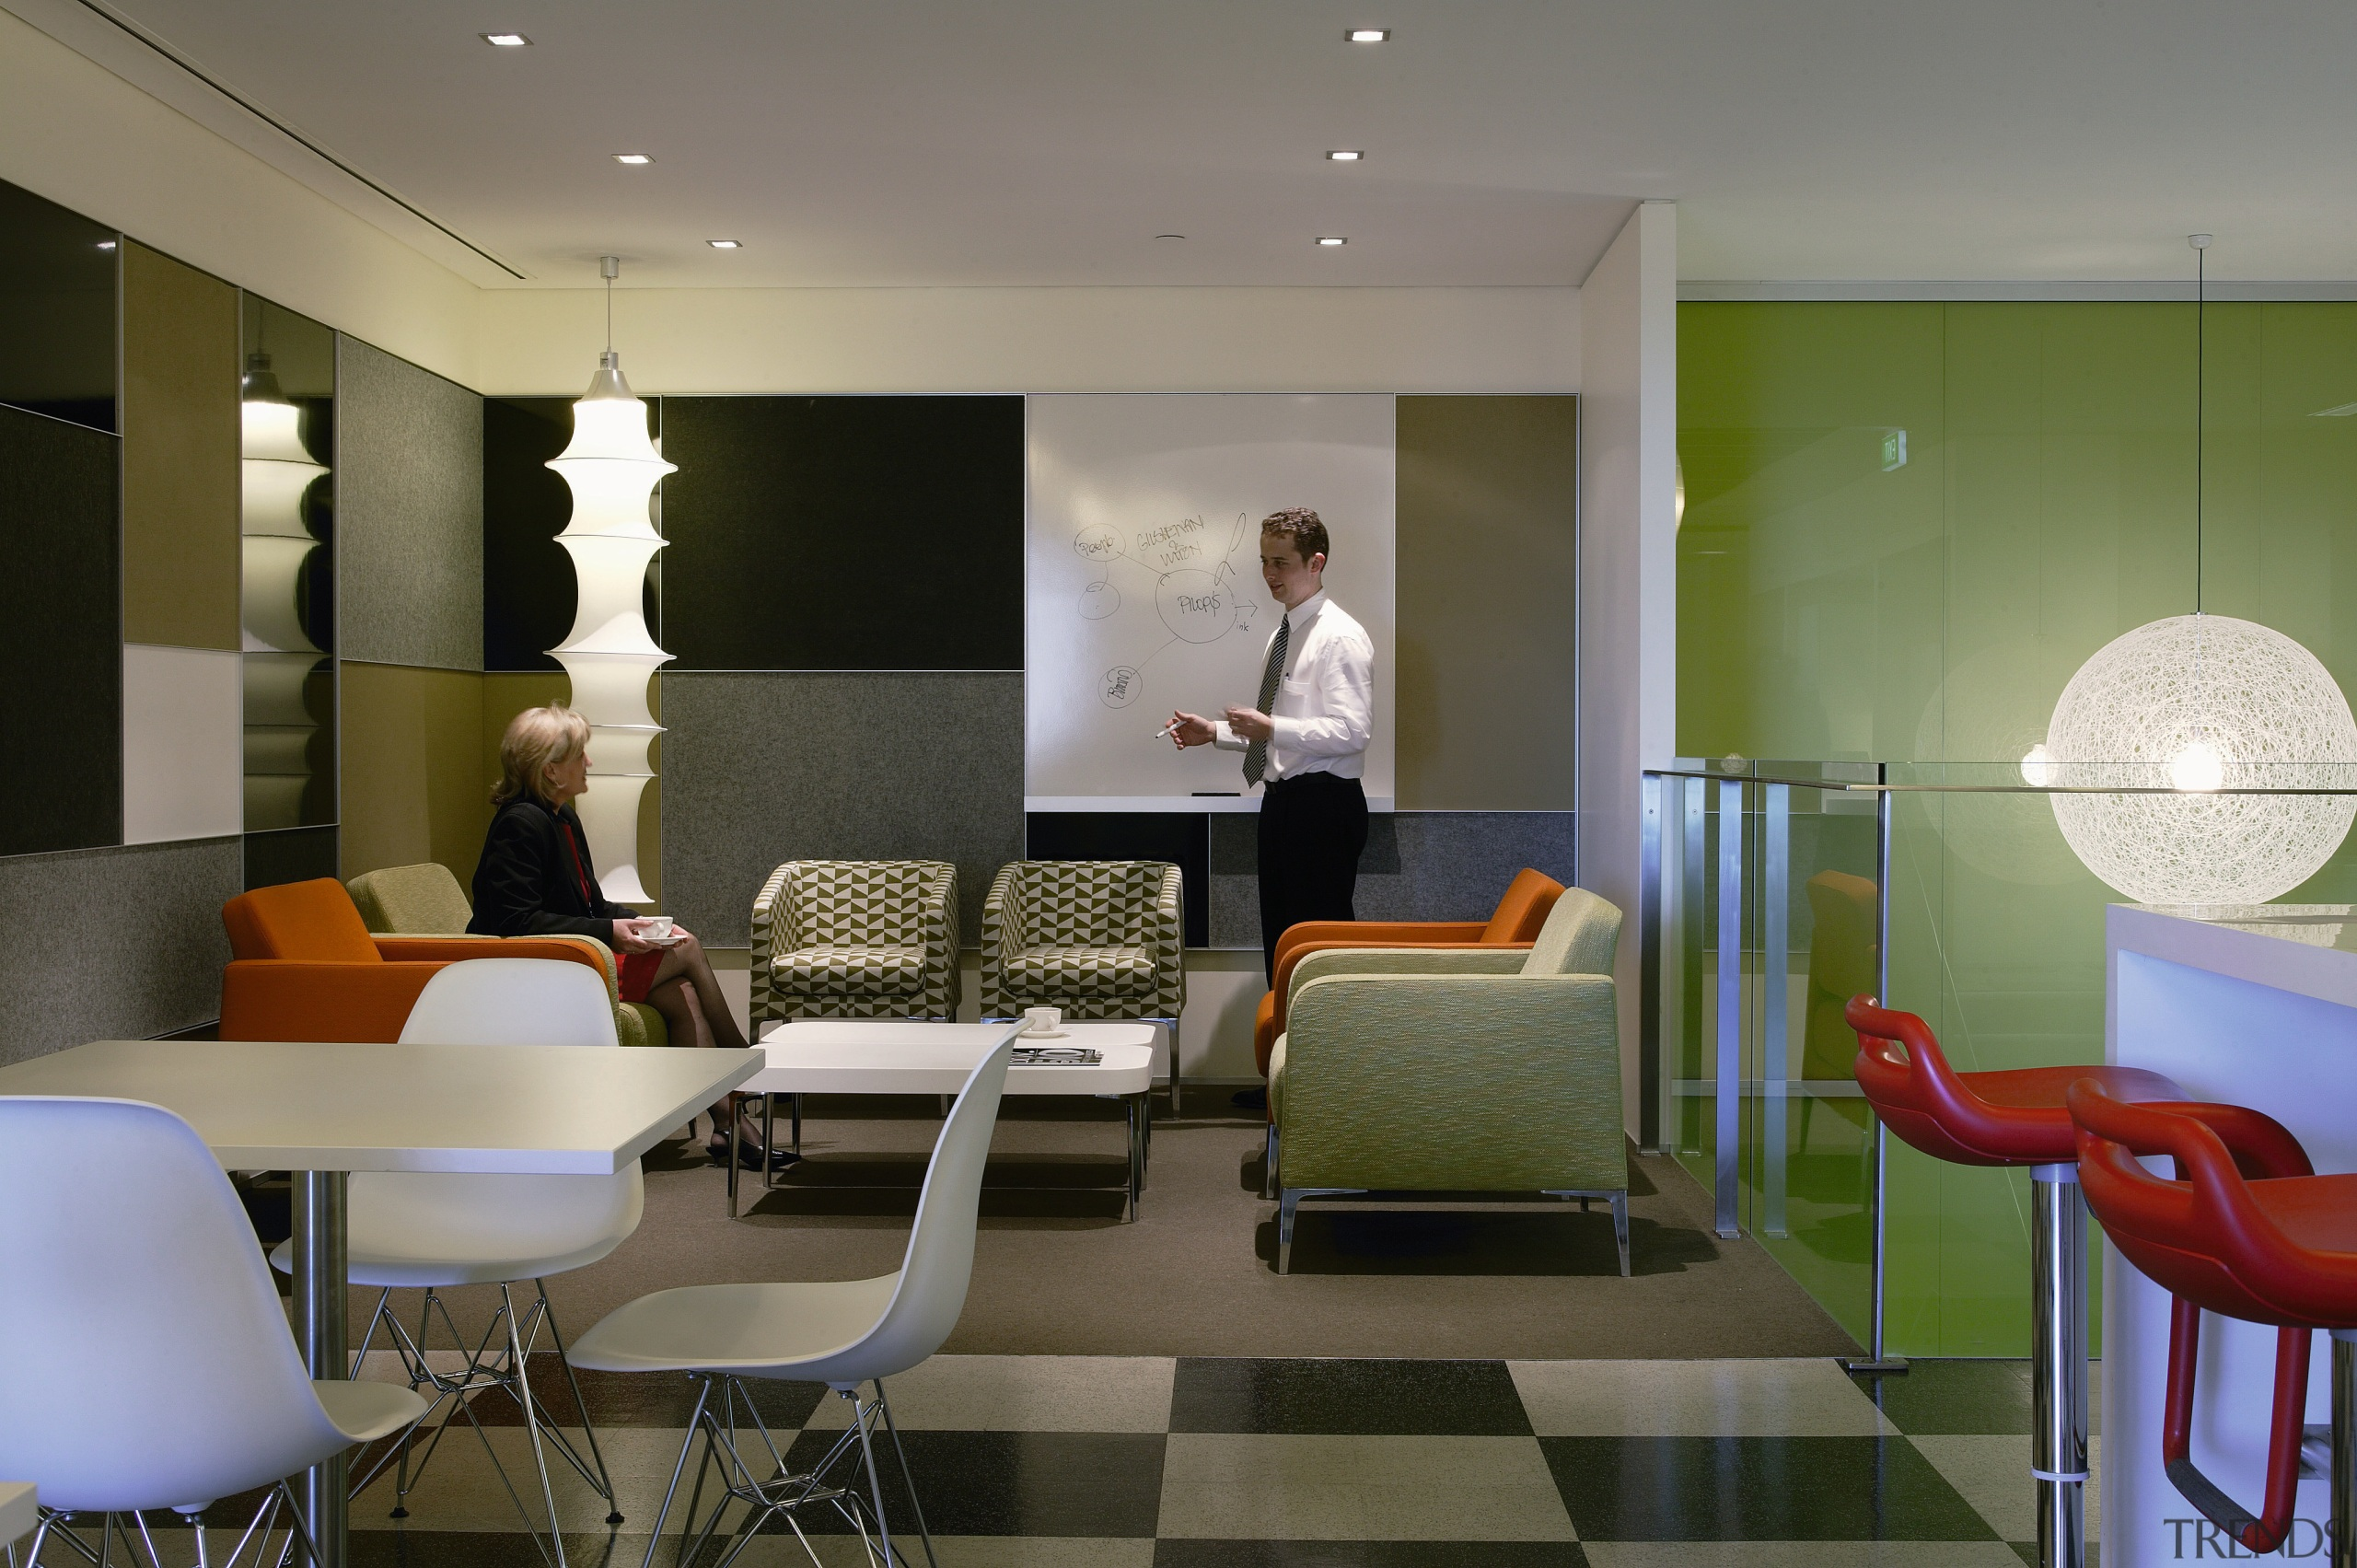 View of the breakout area, green, brown and apartment, architecture, ceiling, furniture, interior design, lobby, office, room, table, waiting room, gray, brown